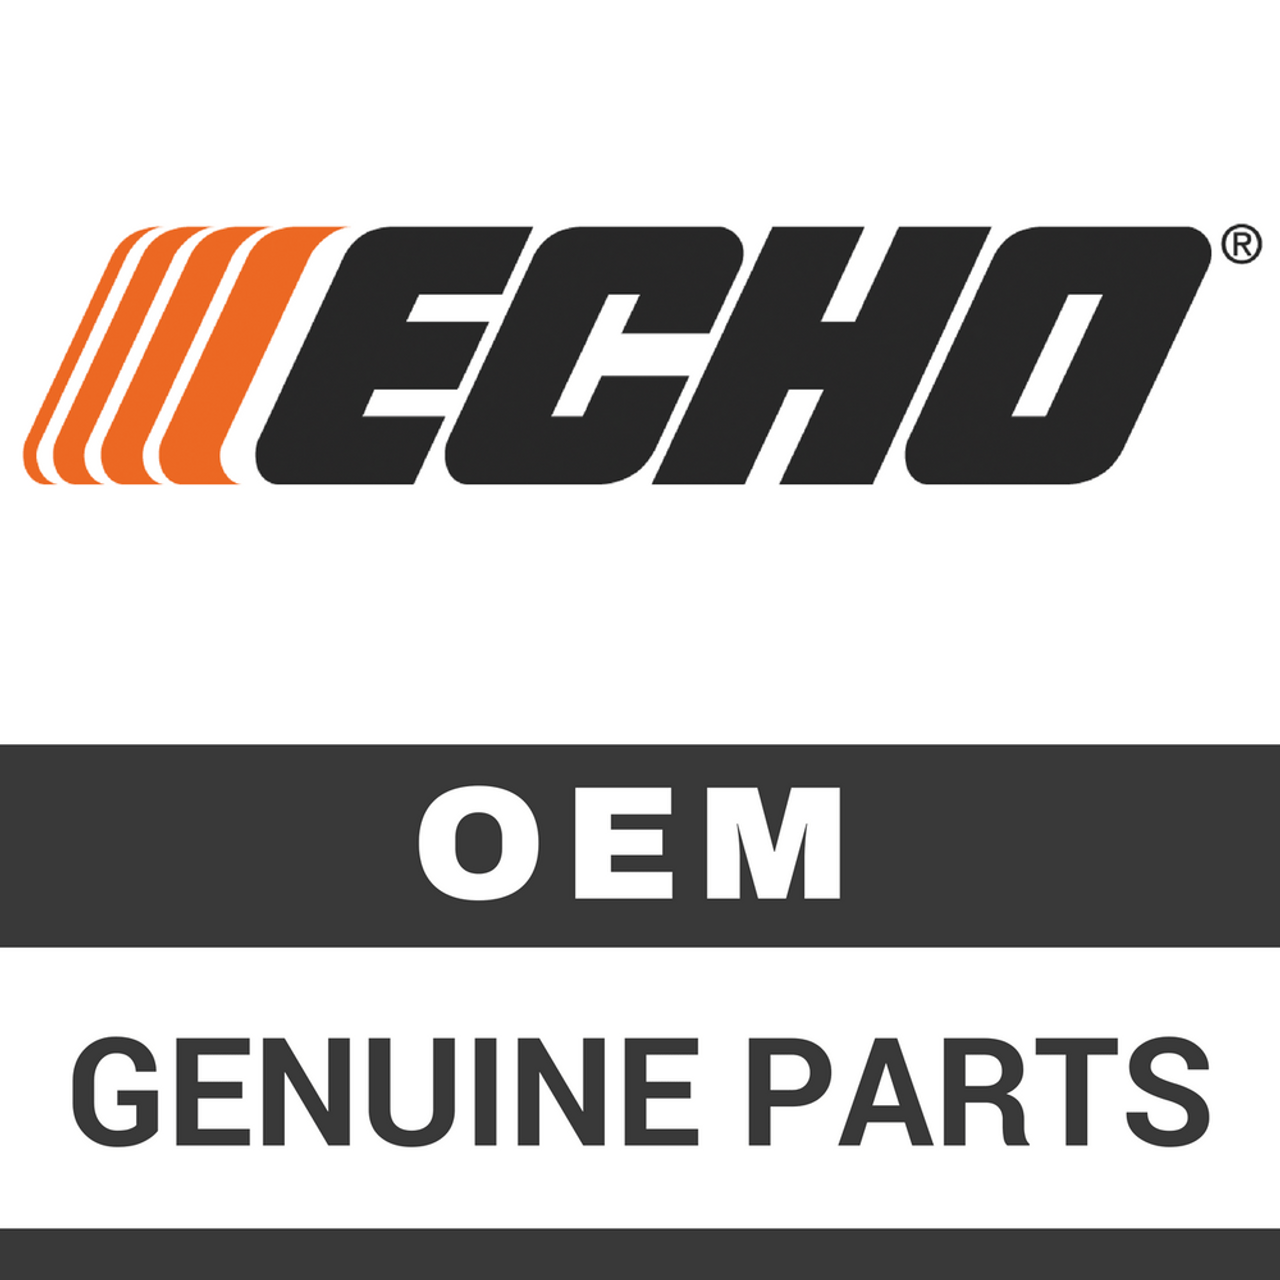 ECHO 99988803010 - DISPOSABLE MASK - 10 PACK - Image 1